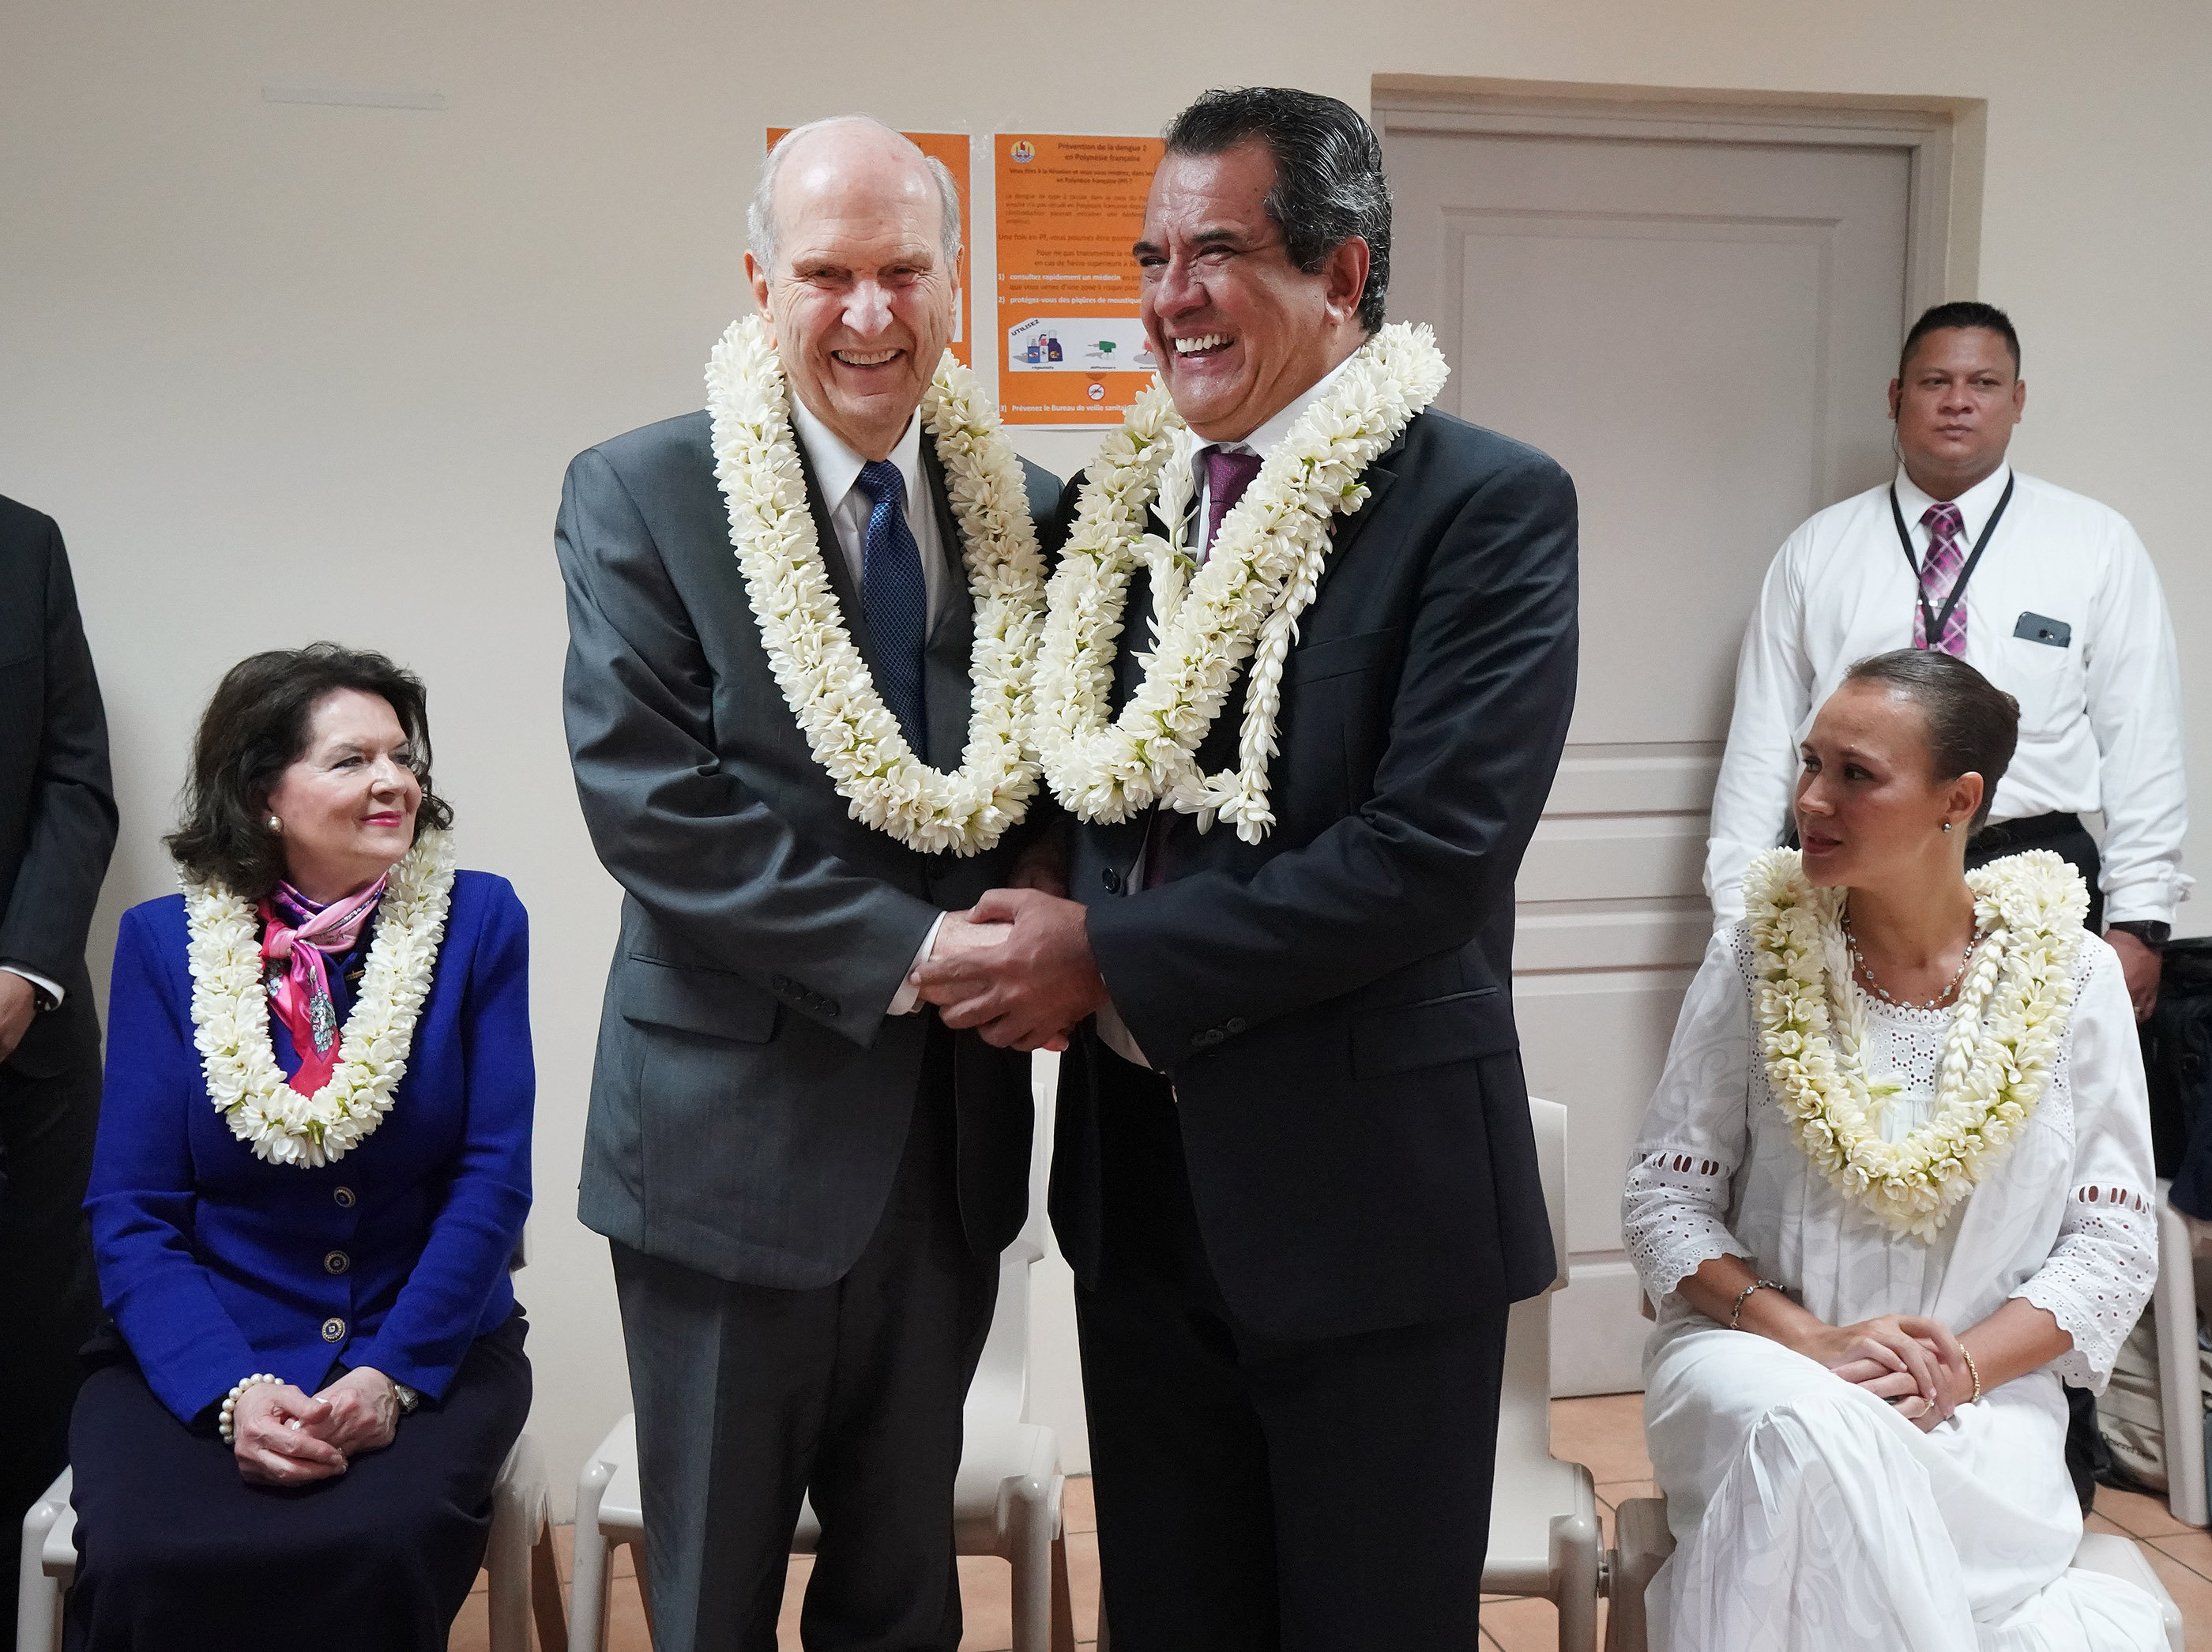 President Russell M. Nelson of The Church of Jesus Christ of Latter-day Saints, left, and French Polynesia President Edouard Fritch greet in Papeete, Tahiti, on May 24, 2019.